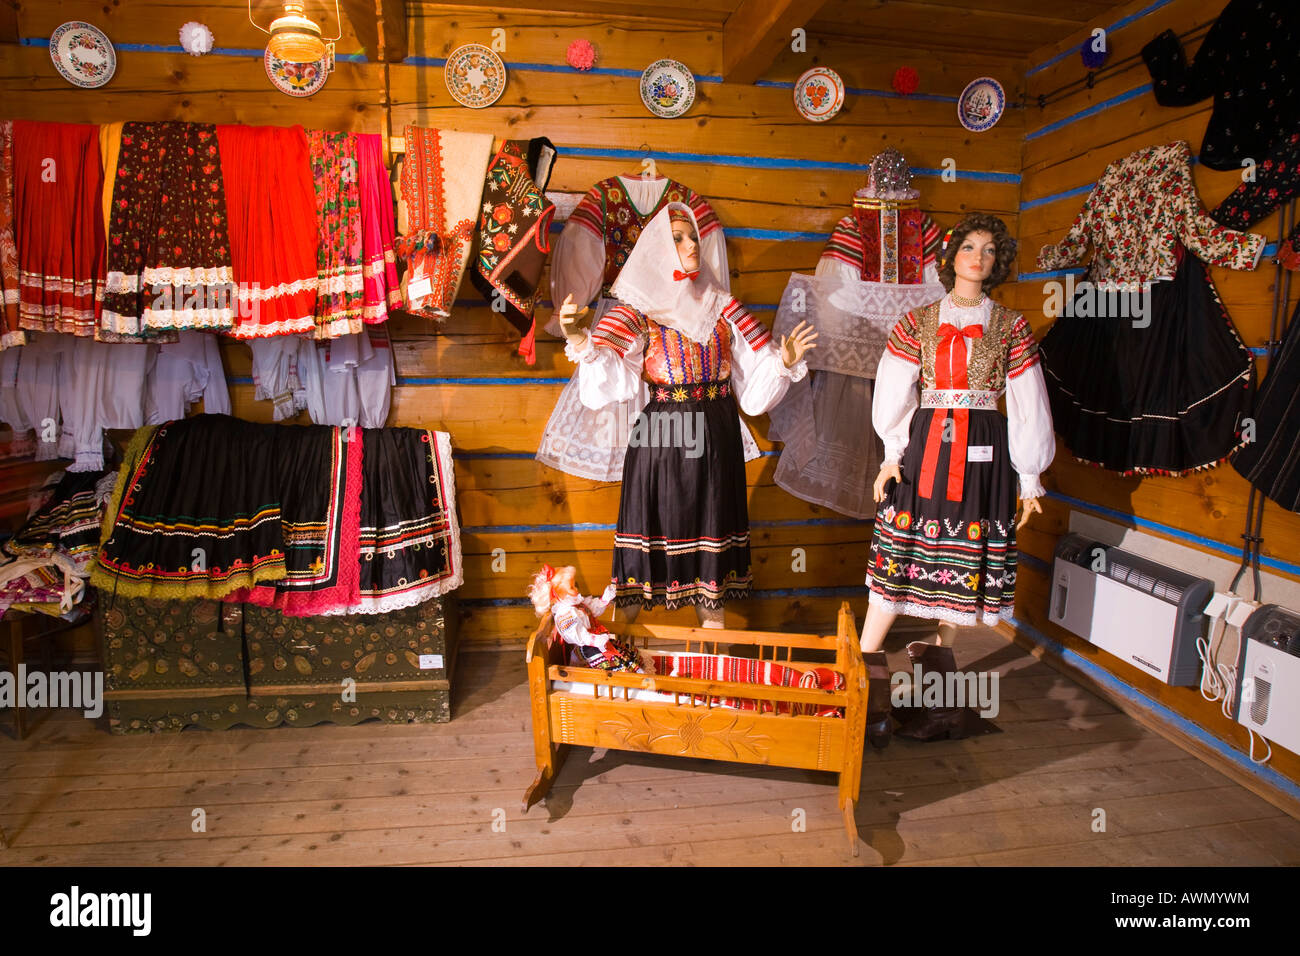 Traditional, handcrafted womens' clothes, on the left a married woman's dress and on the right a virgin's - Stock Image